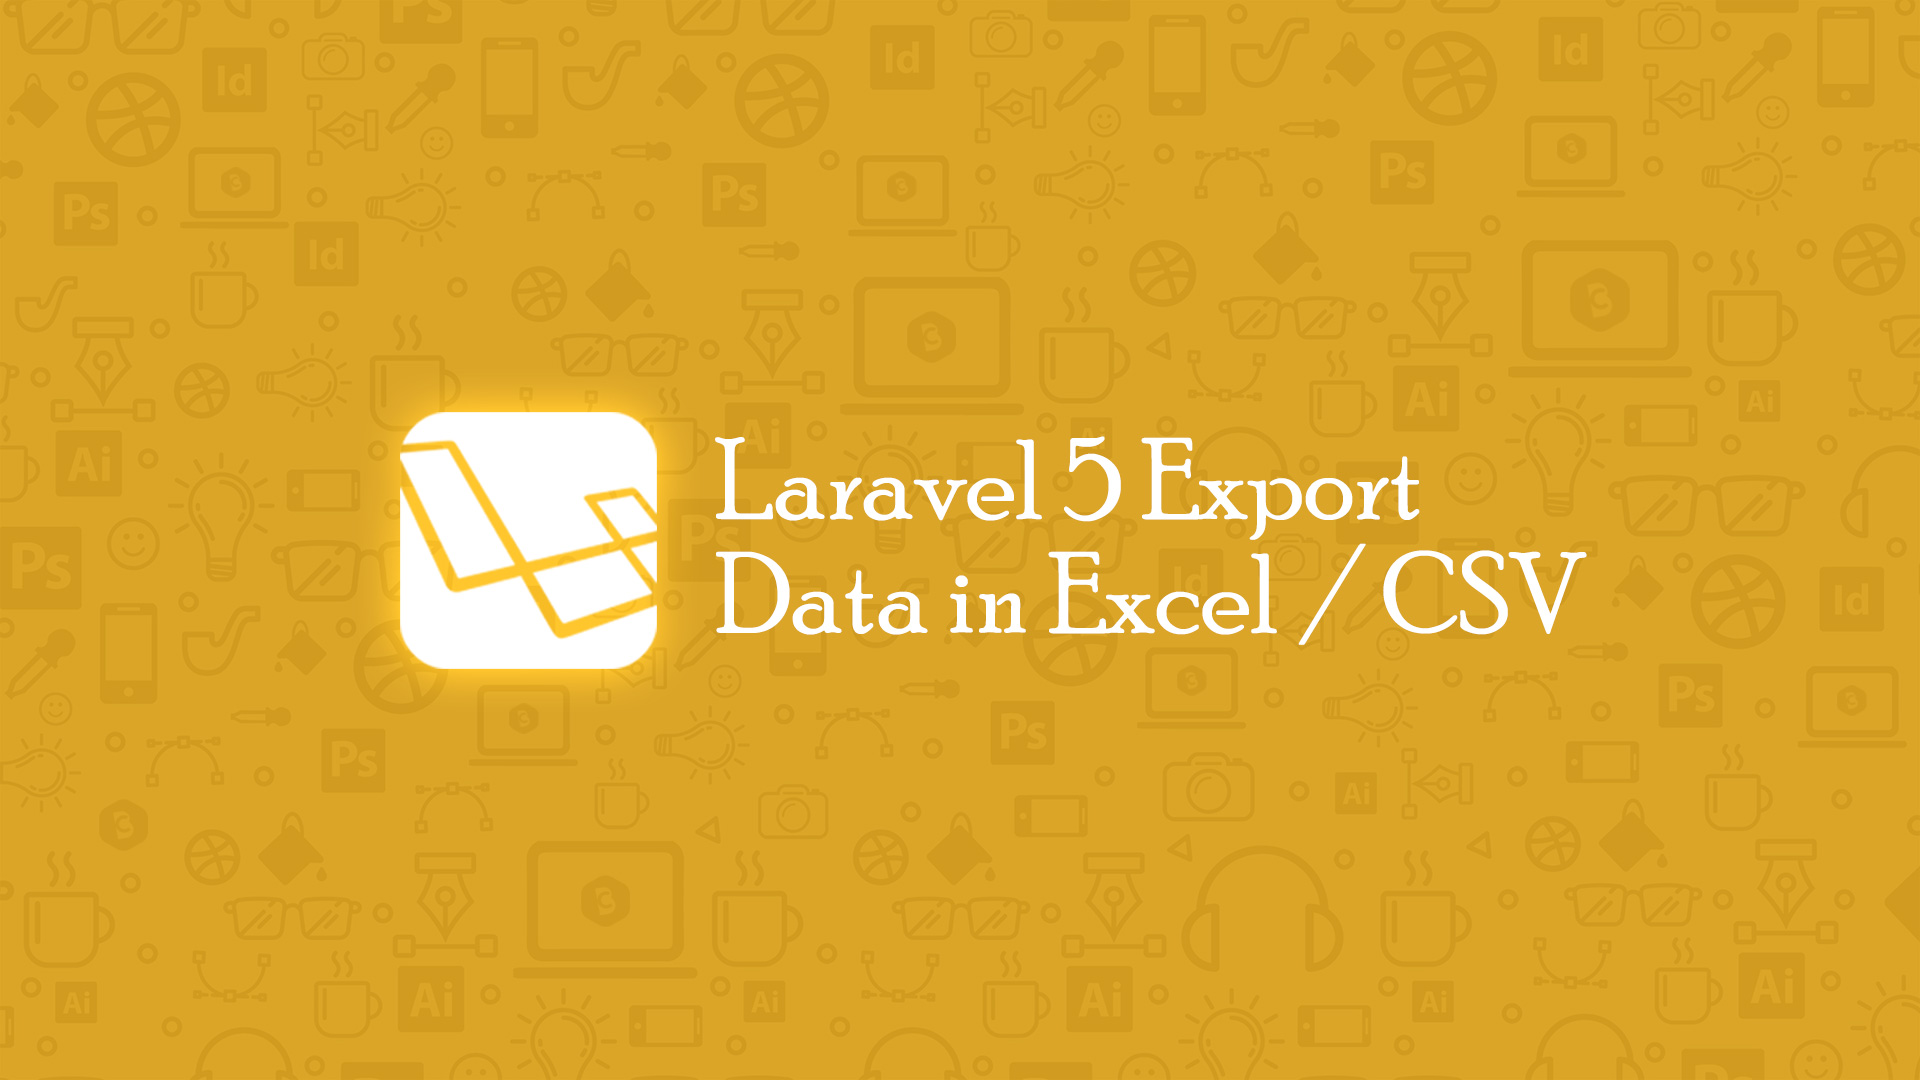 Laravel 5 Export Data in Excel and CSV - Code Briefly